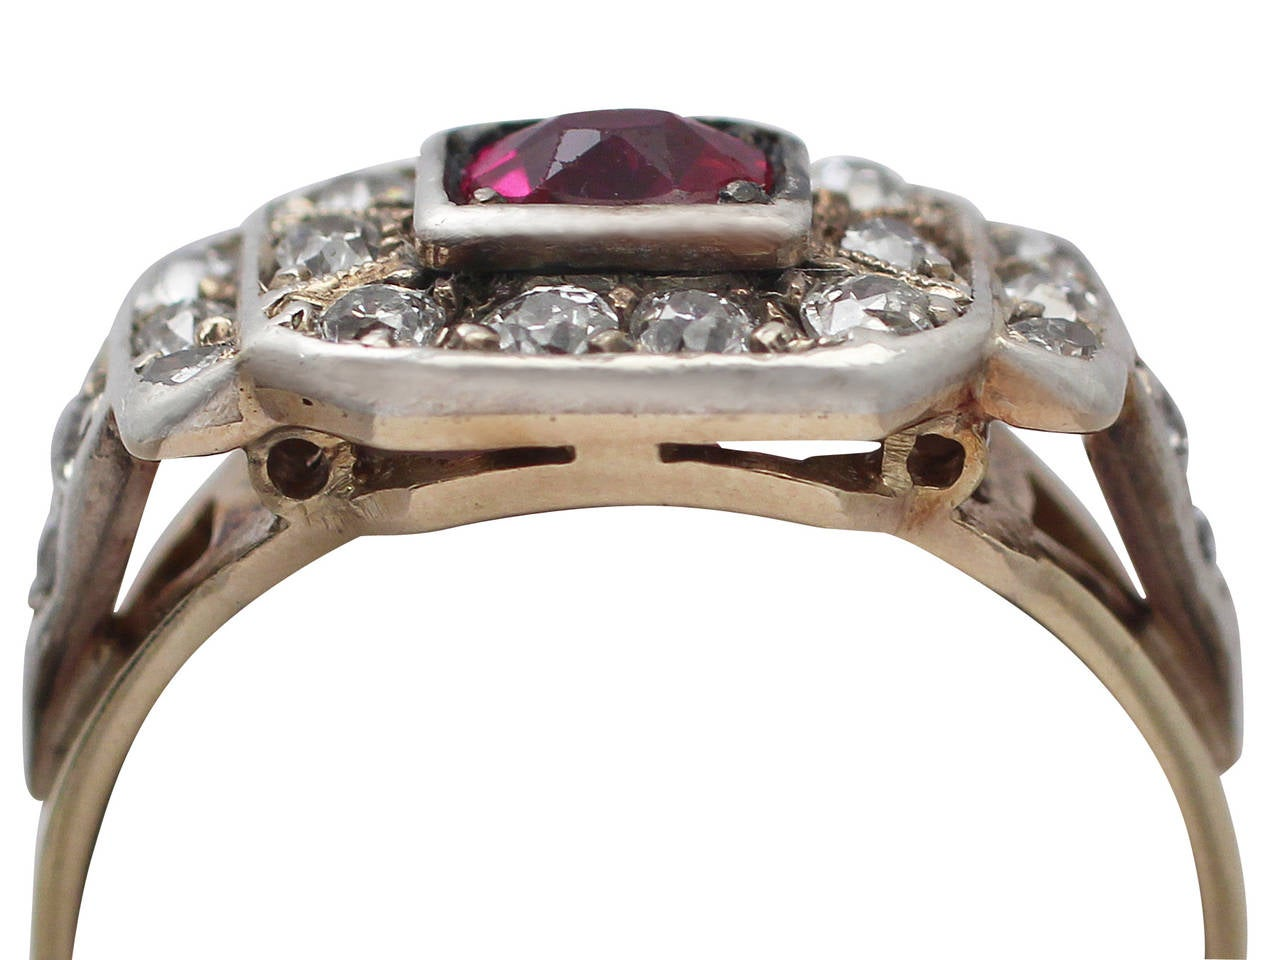 A fine and impressive antique 0.60 carat natural ruby and 0.59 carat diamond, 14 karat yellow gold, 14 karat white gold set dress ring; part of our antique jewelry and estate jewelry collections  This impressive antique ruby and diamond ring has